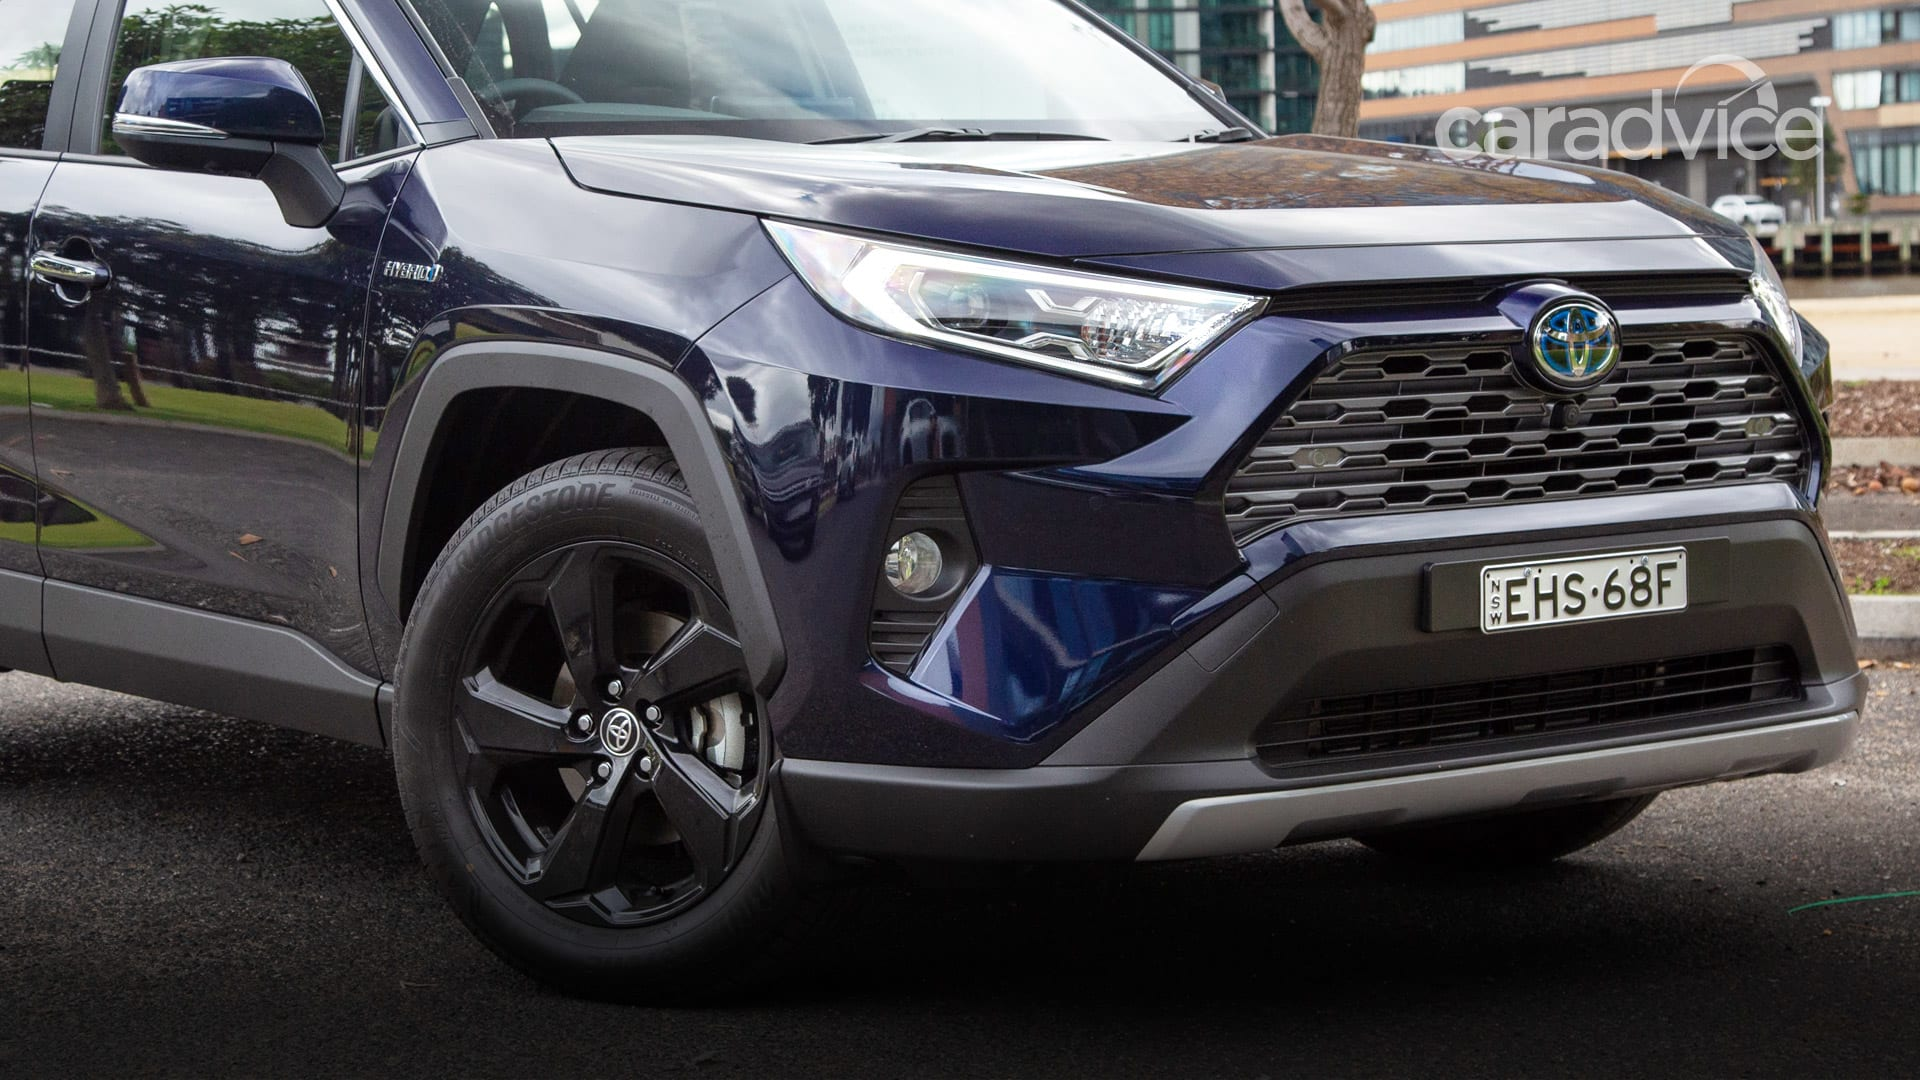 2021 toyota hilux price rises across the range  caradvice